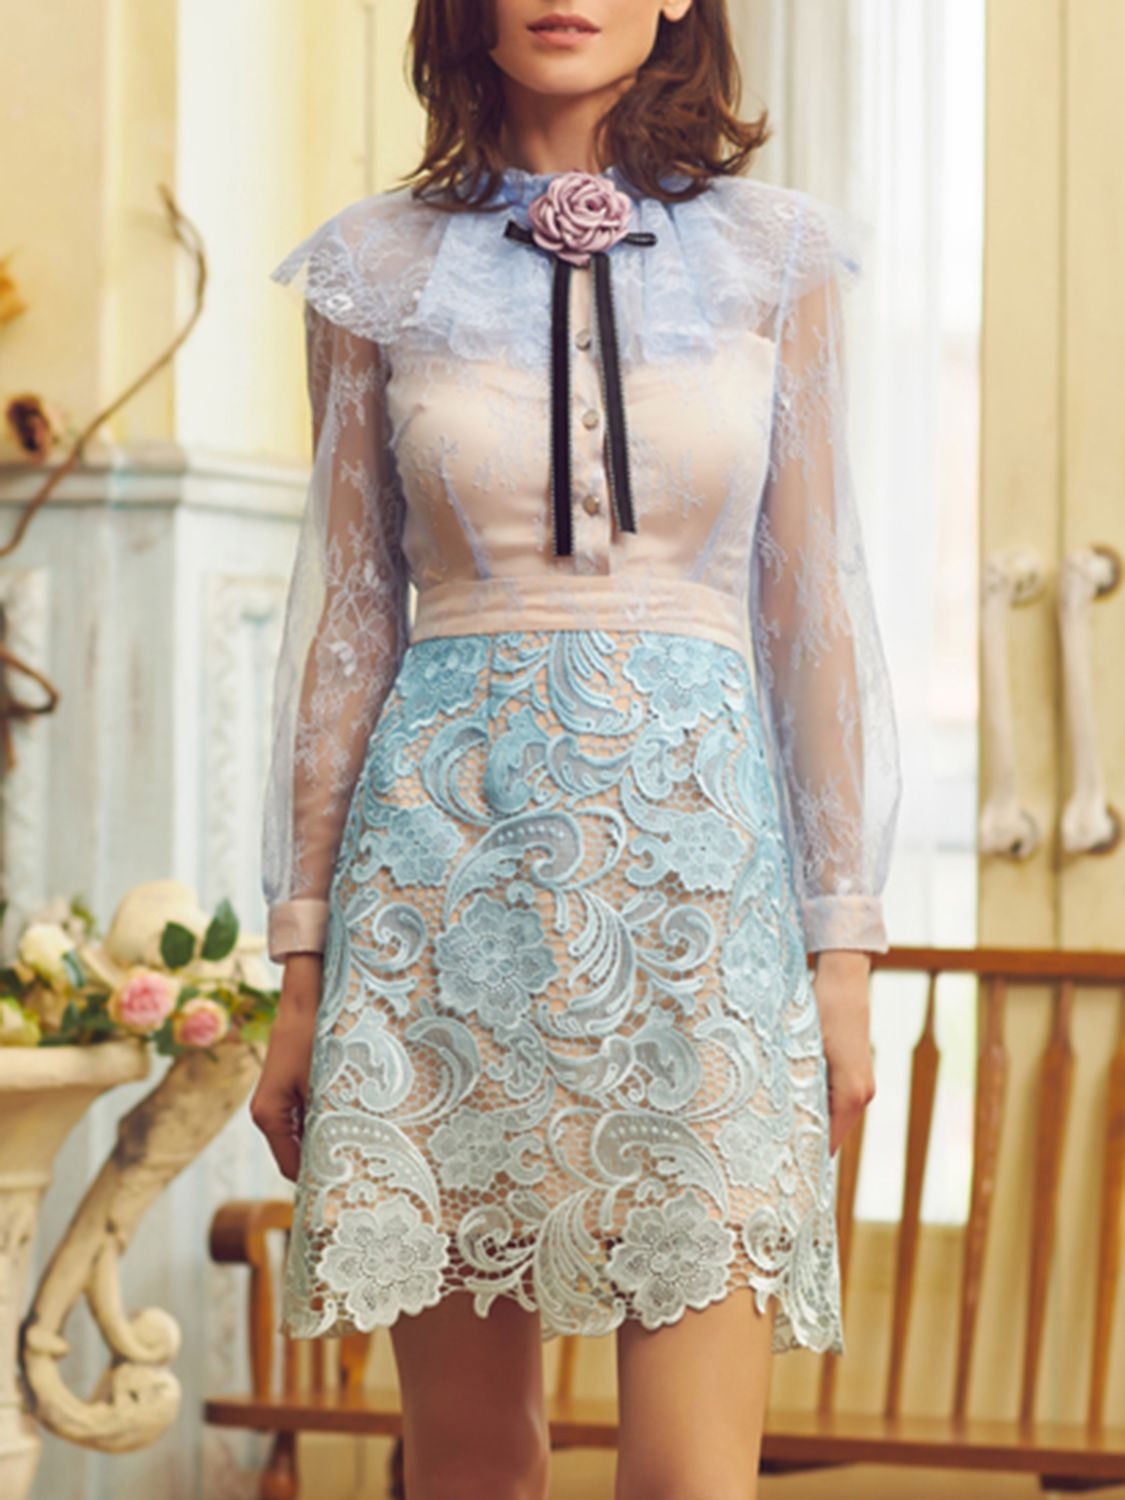 Lace dress with cape  Blue Cape Detail Sheer Sleeve Rose Embellished Lace Dress  II